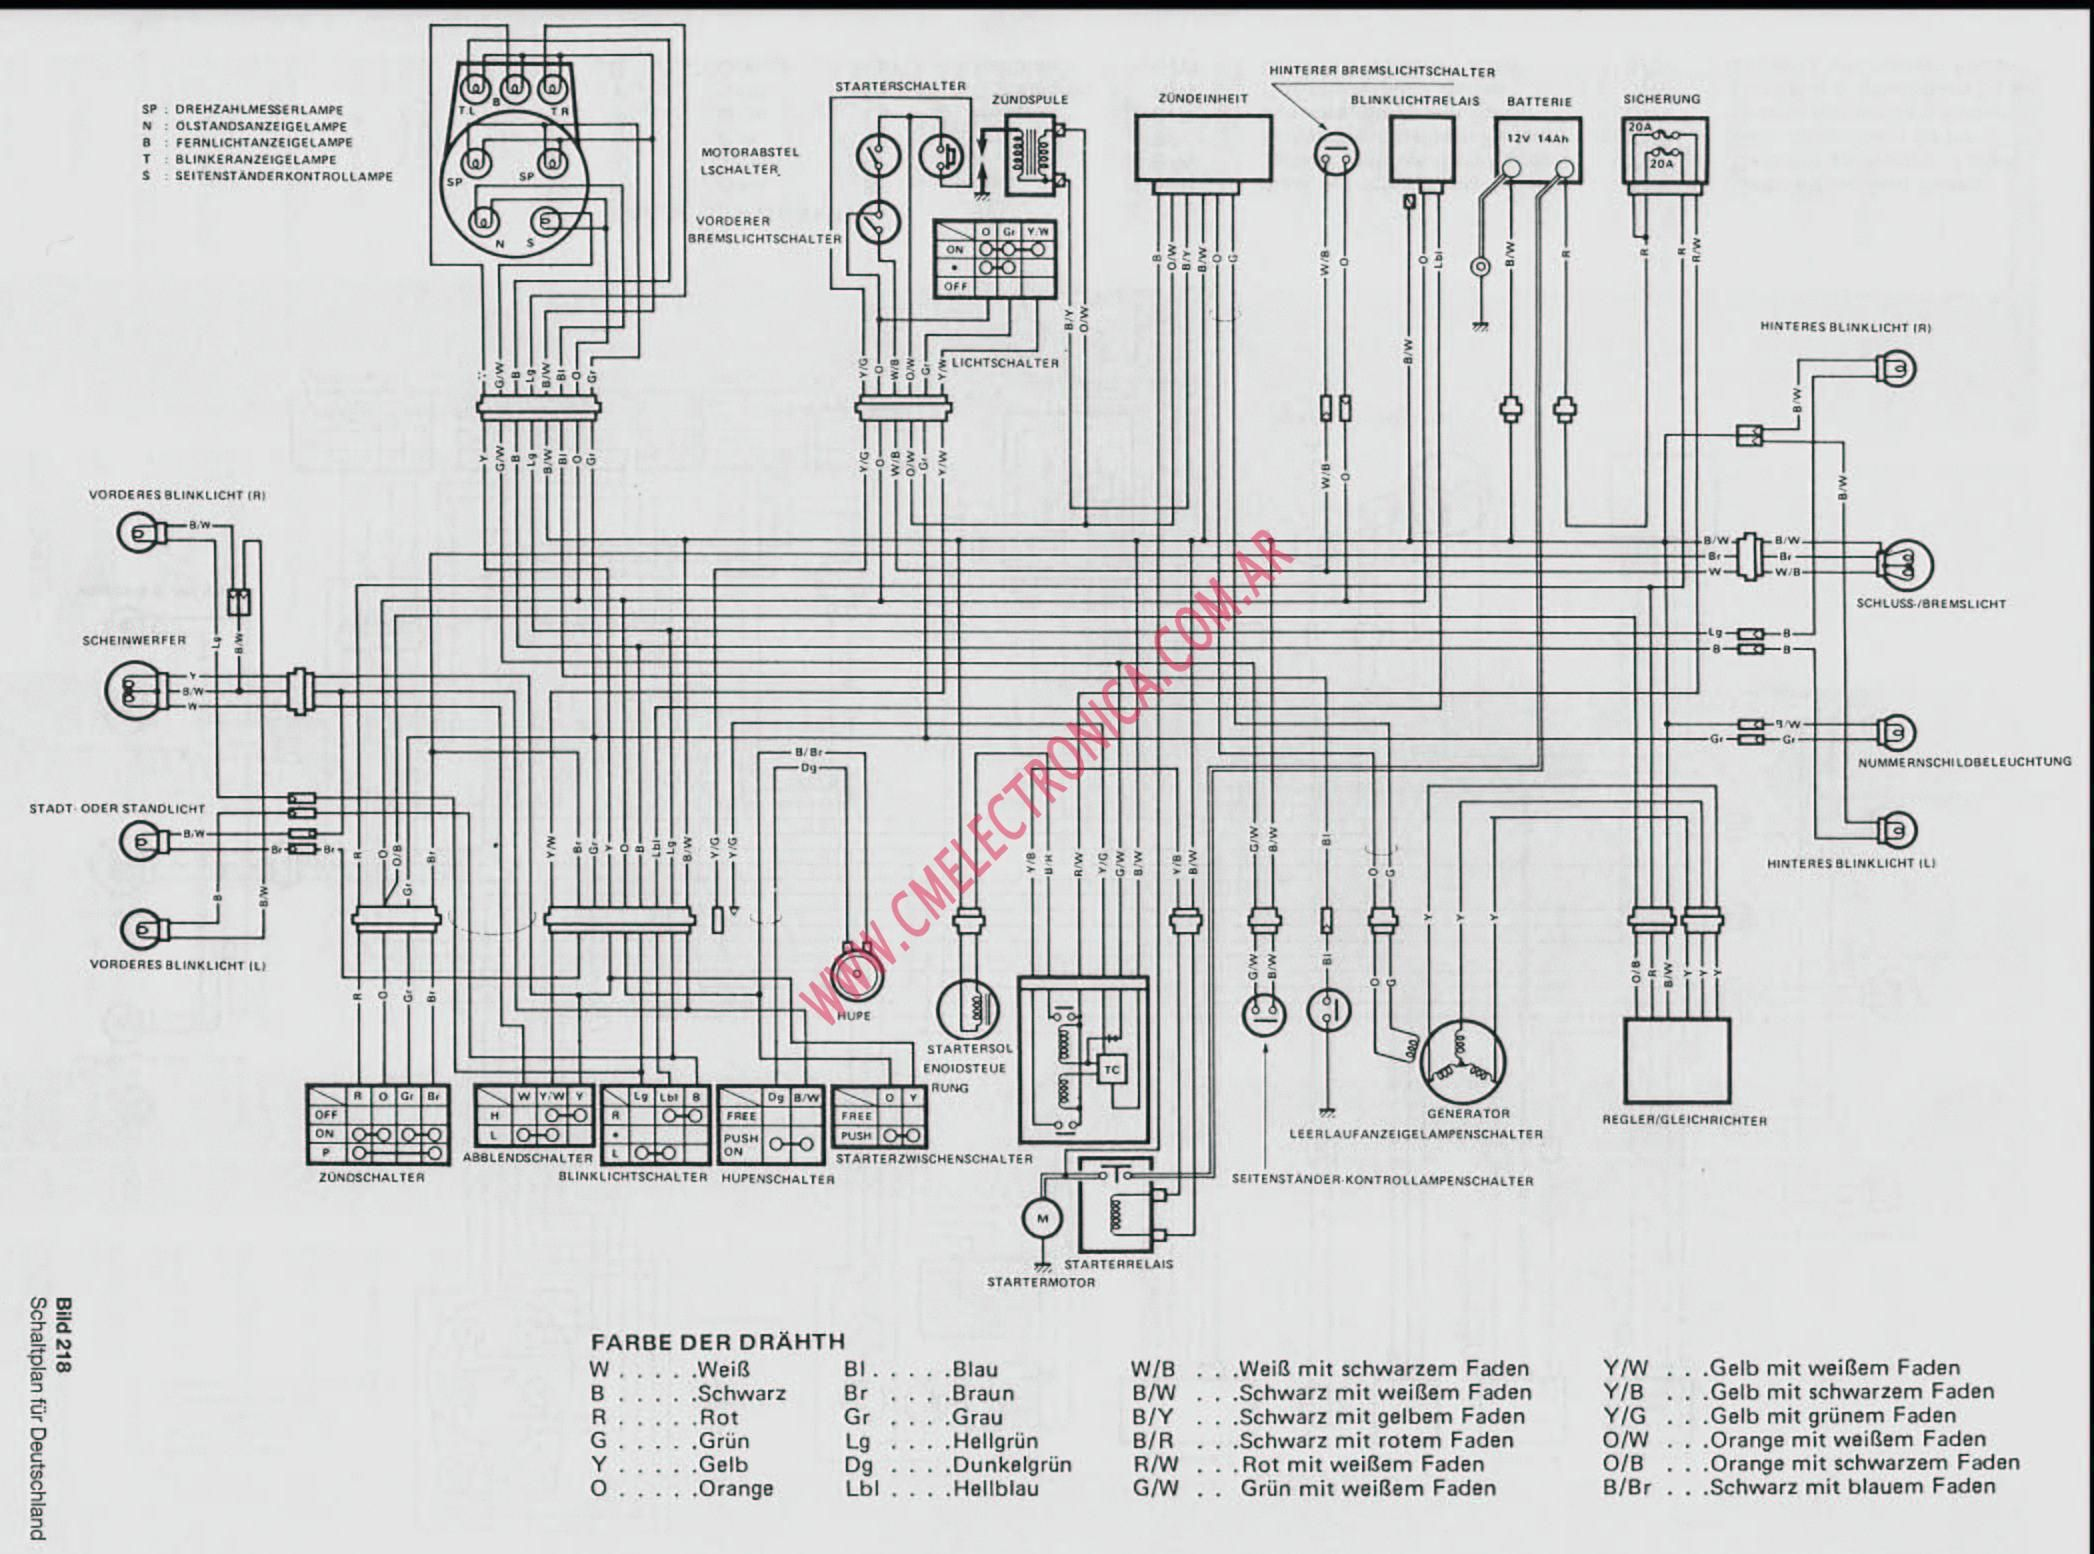 Best of Diagram Suzuki Vl1500 Wiring Diagram - Millions Ideas Diagram And  Concept Wiring Diagram